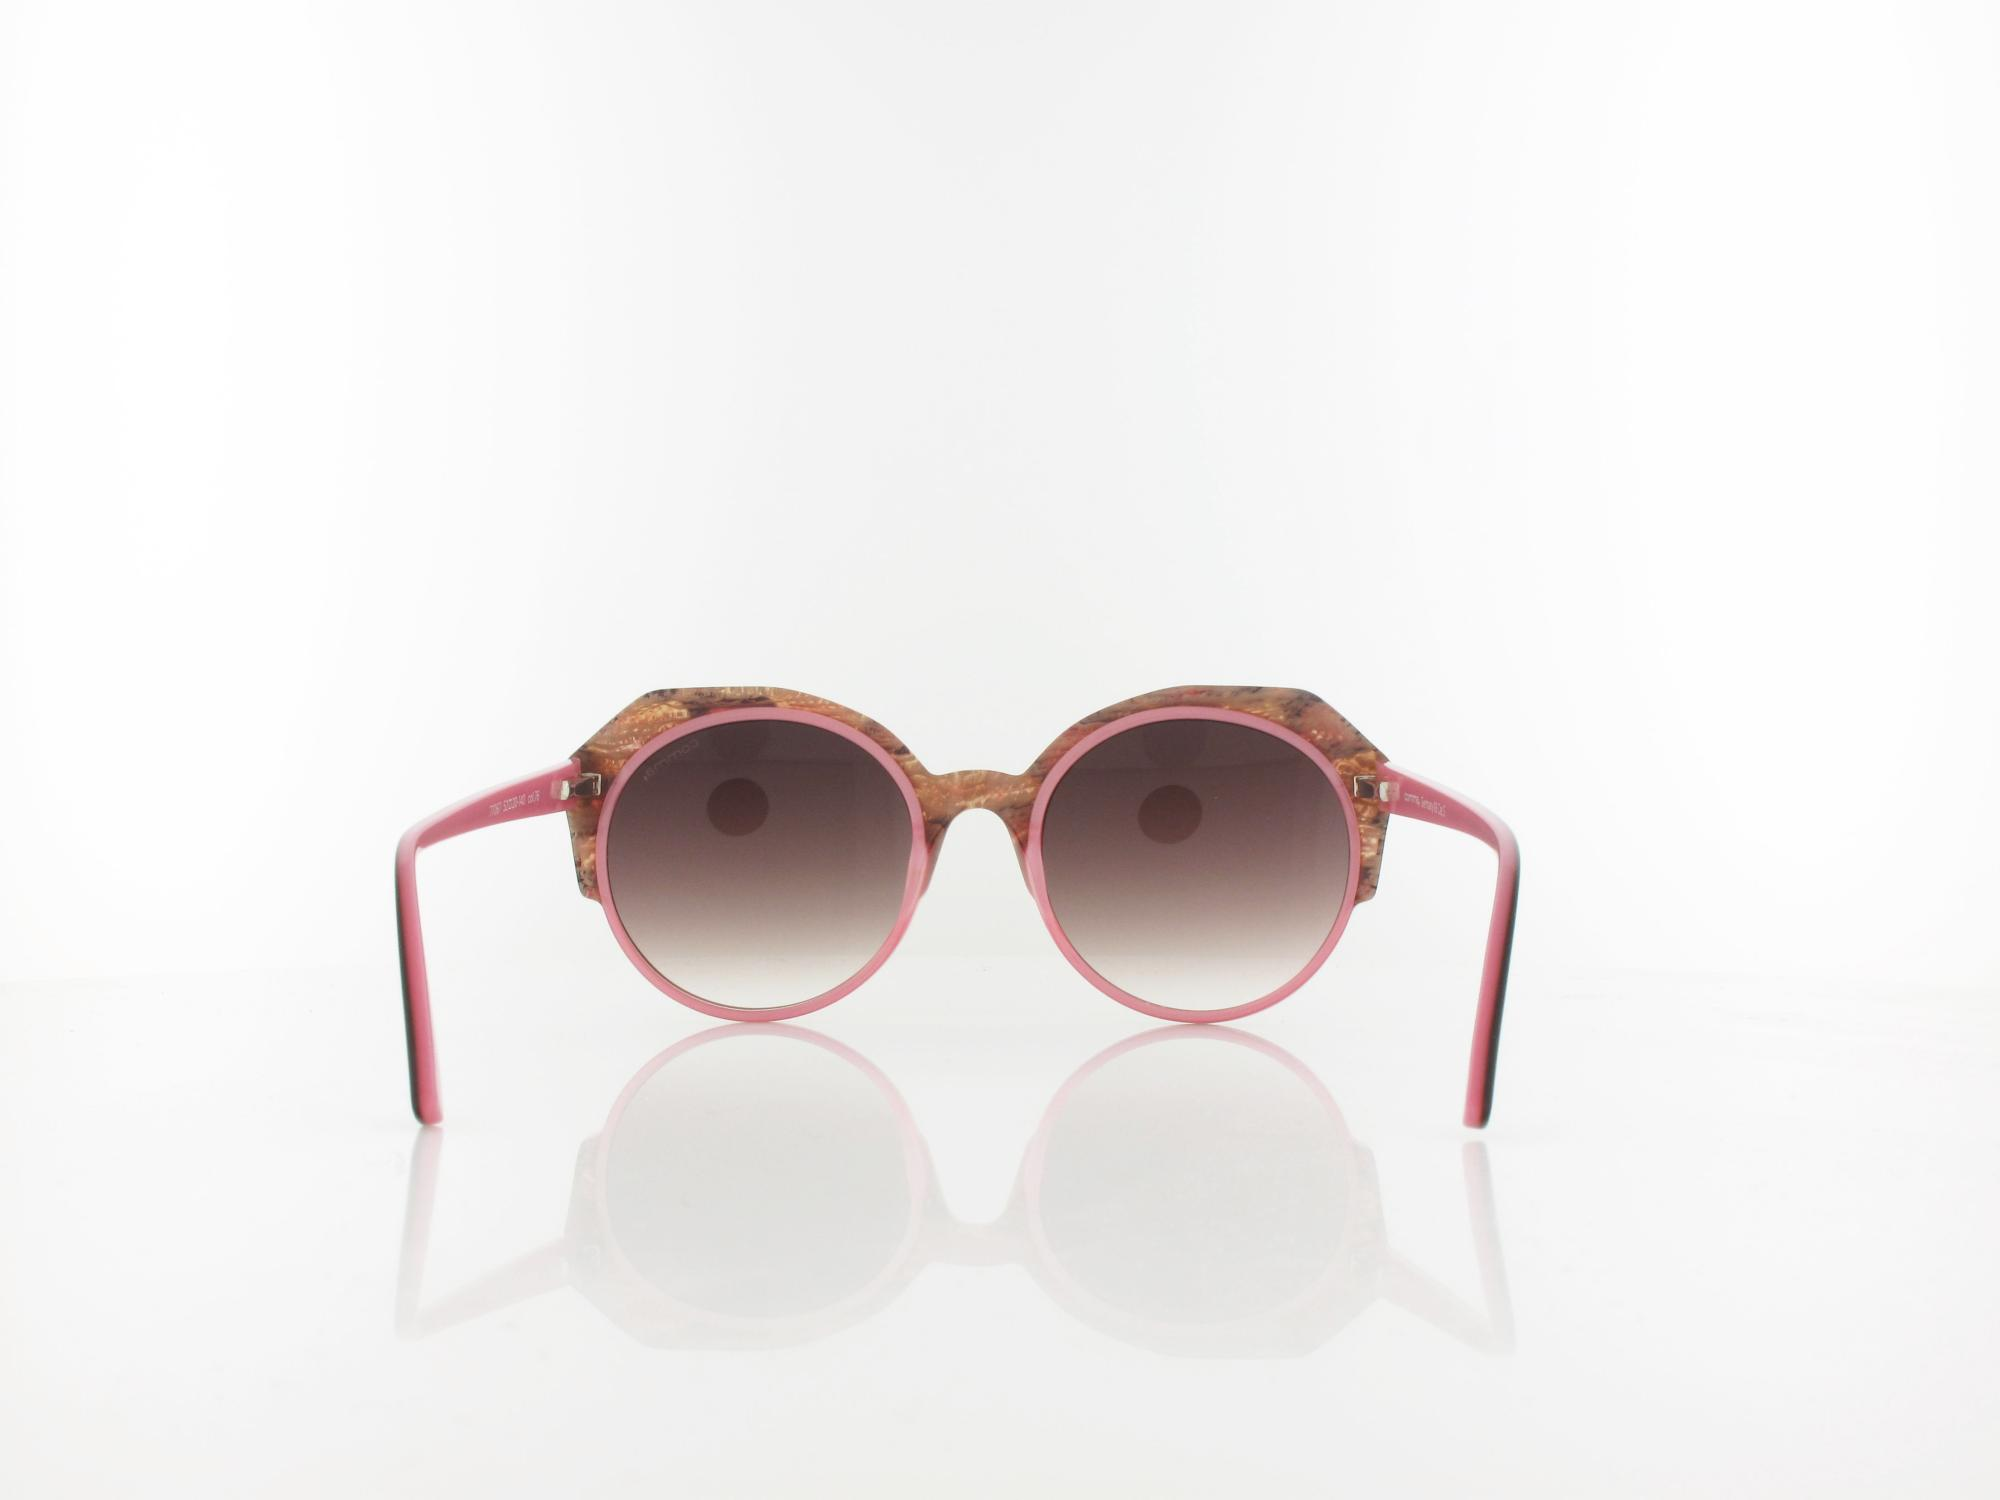 Comma | 77067 76 52 | red gold brown / rose gradient